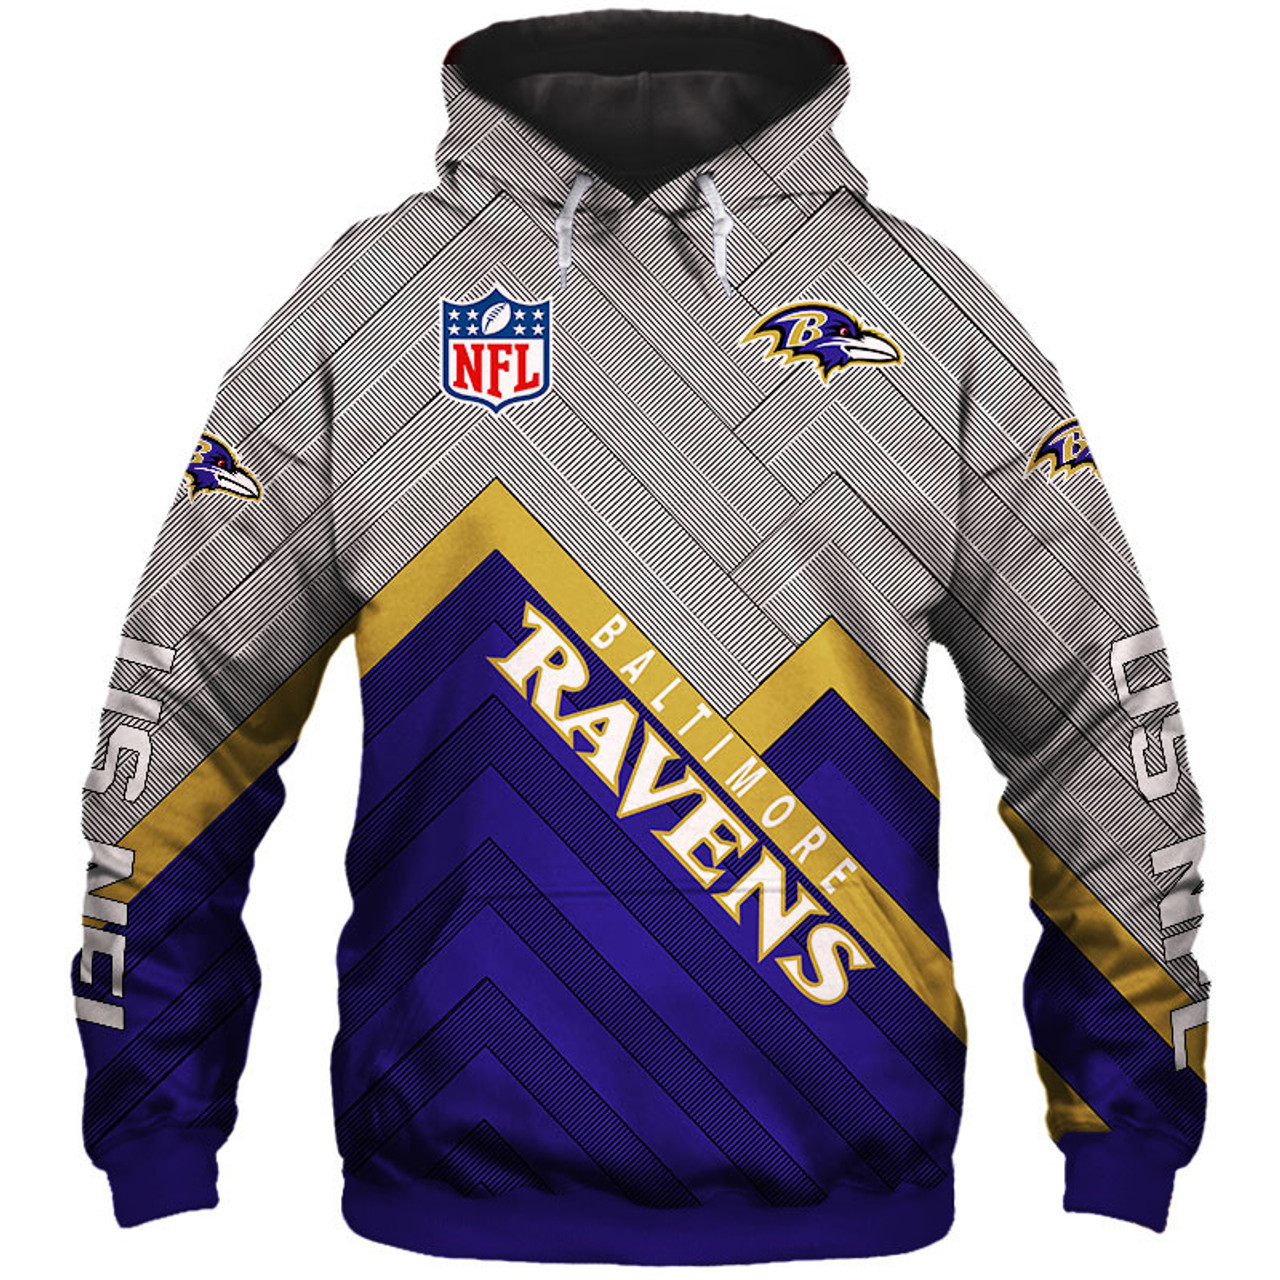 pretty nice 85cbe 4a9fa **(NEW-OFFICIAL-N.F.L.BALTIMORE-RAVENS-PULLOVER-HOODIES/3D-CUSTOM-RAVENS-LOGOS  & OFFICIAL-RAVENS-TEAM-COLORS/NICE-3D-DETAILED-GRAPHIC-PRINTED-DOUBLE-S...